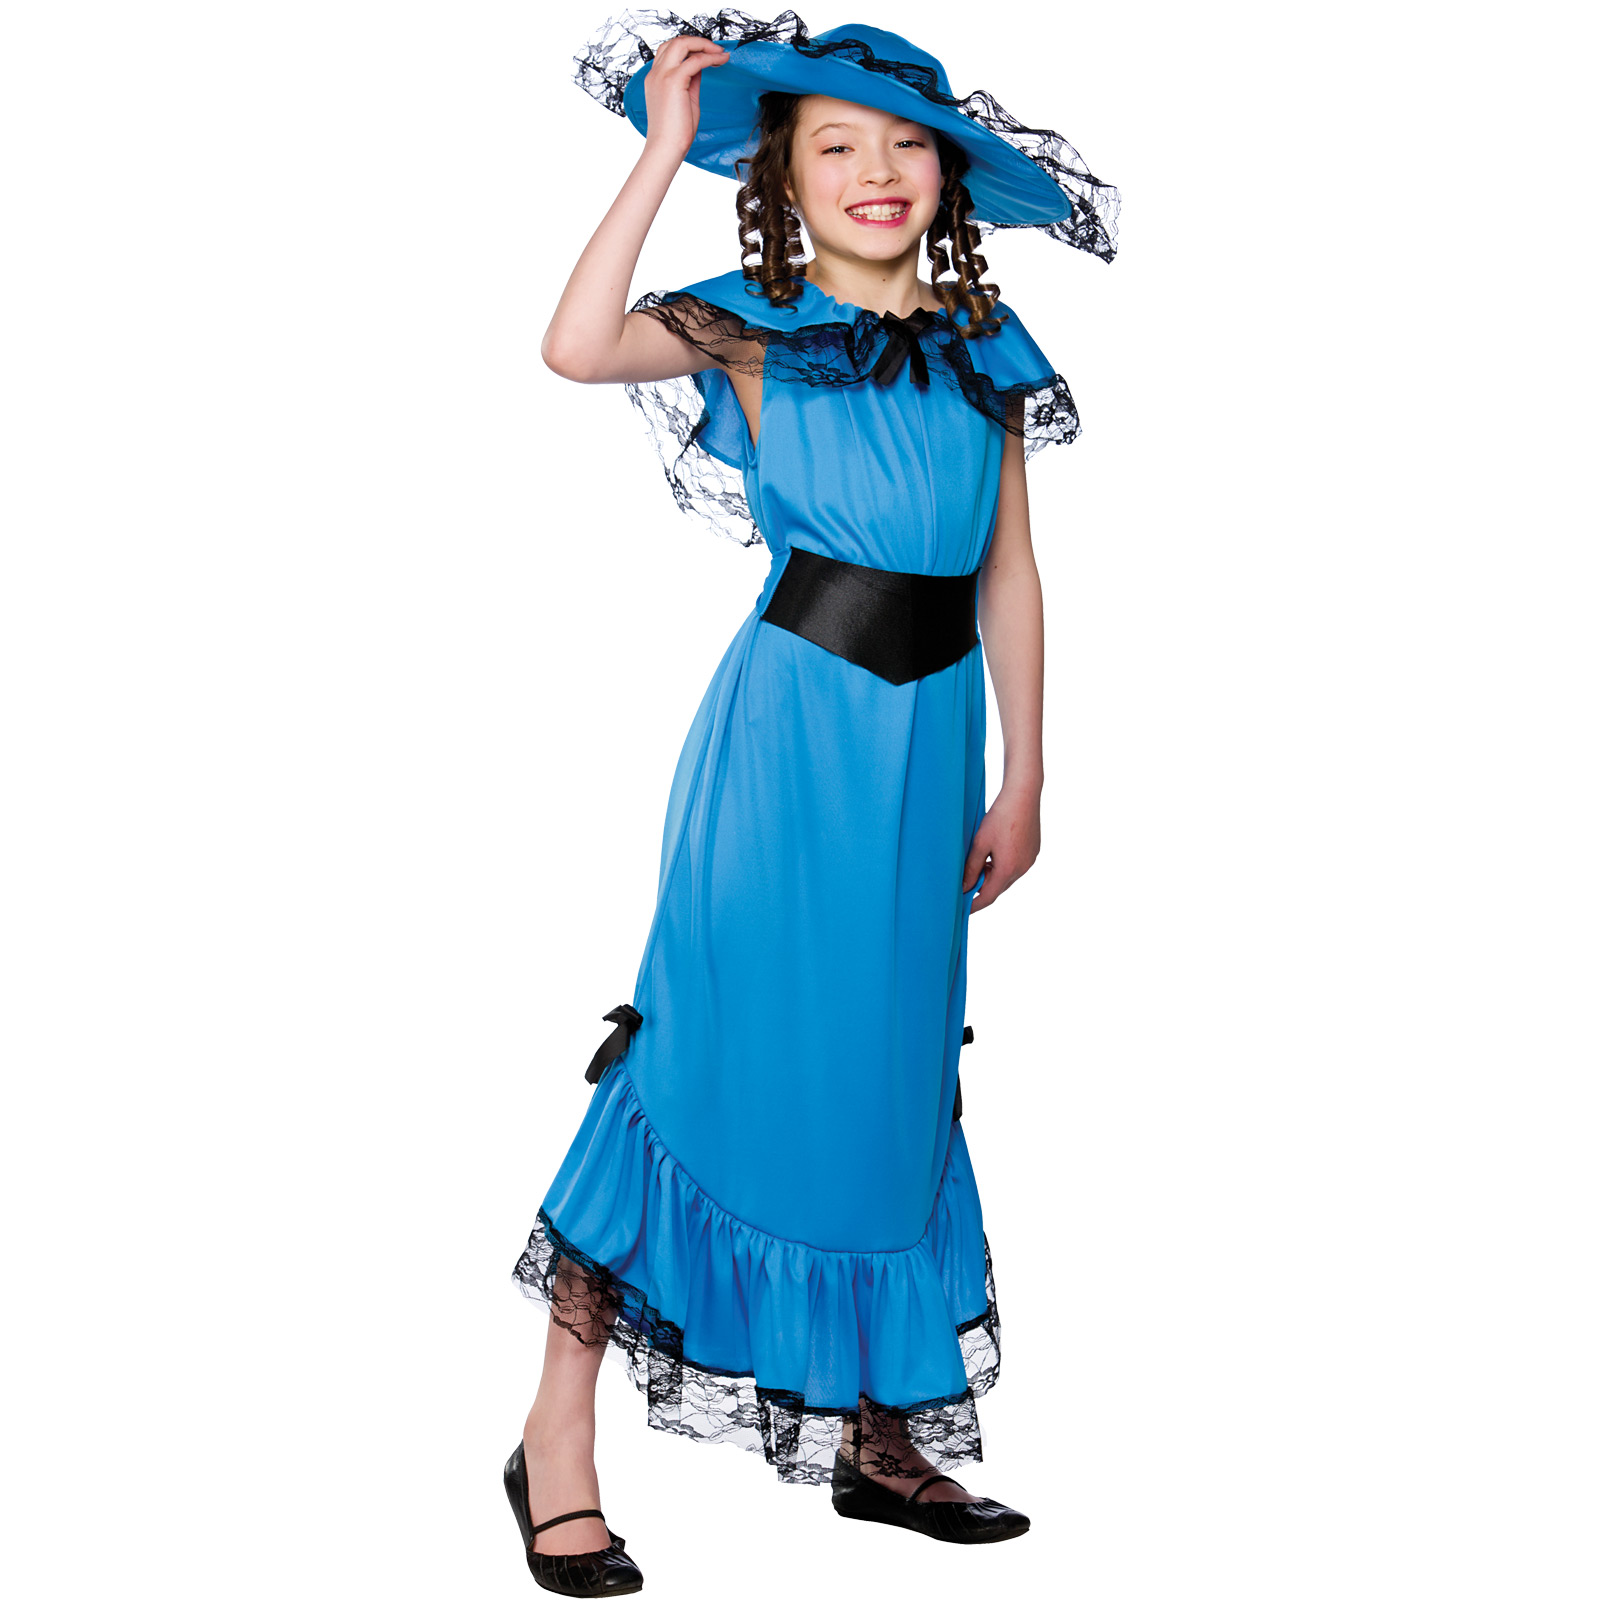 Girls-Blue-Victorian-Lady-Costume-Fancy-Dress-Up-Party-Halloween-Outfit-Child